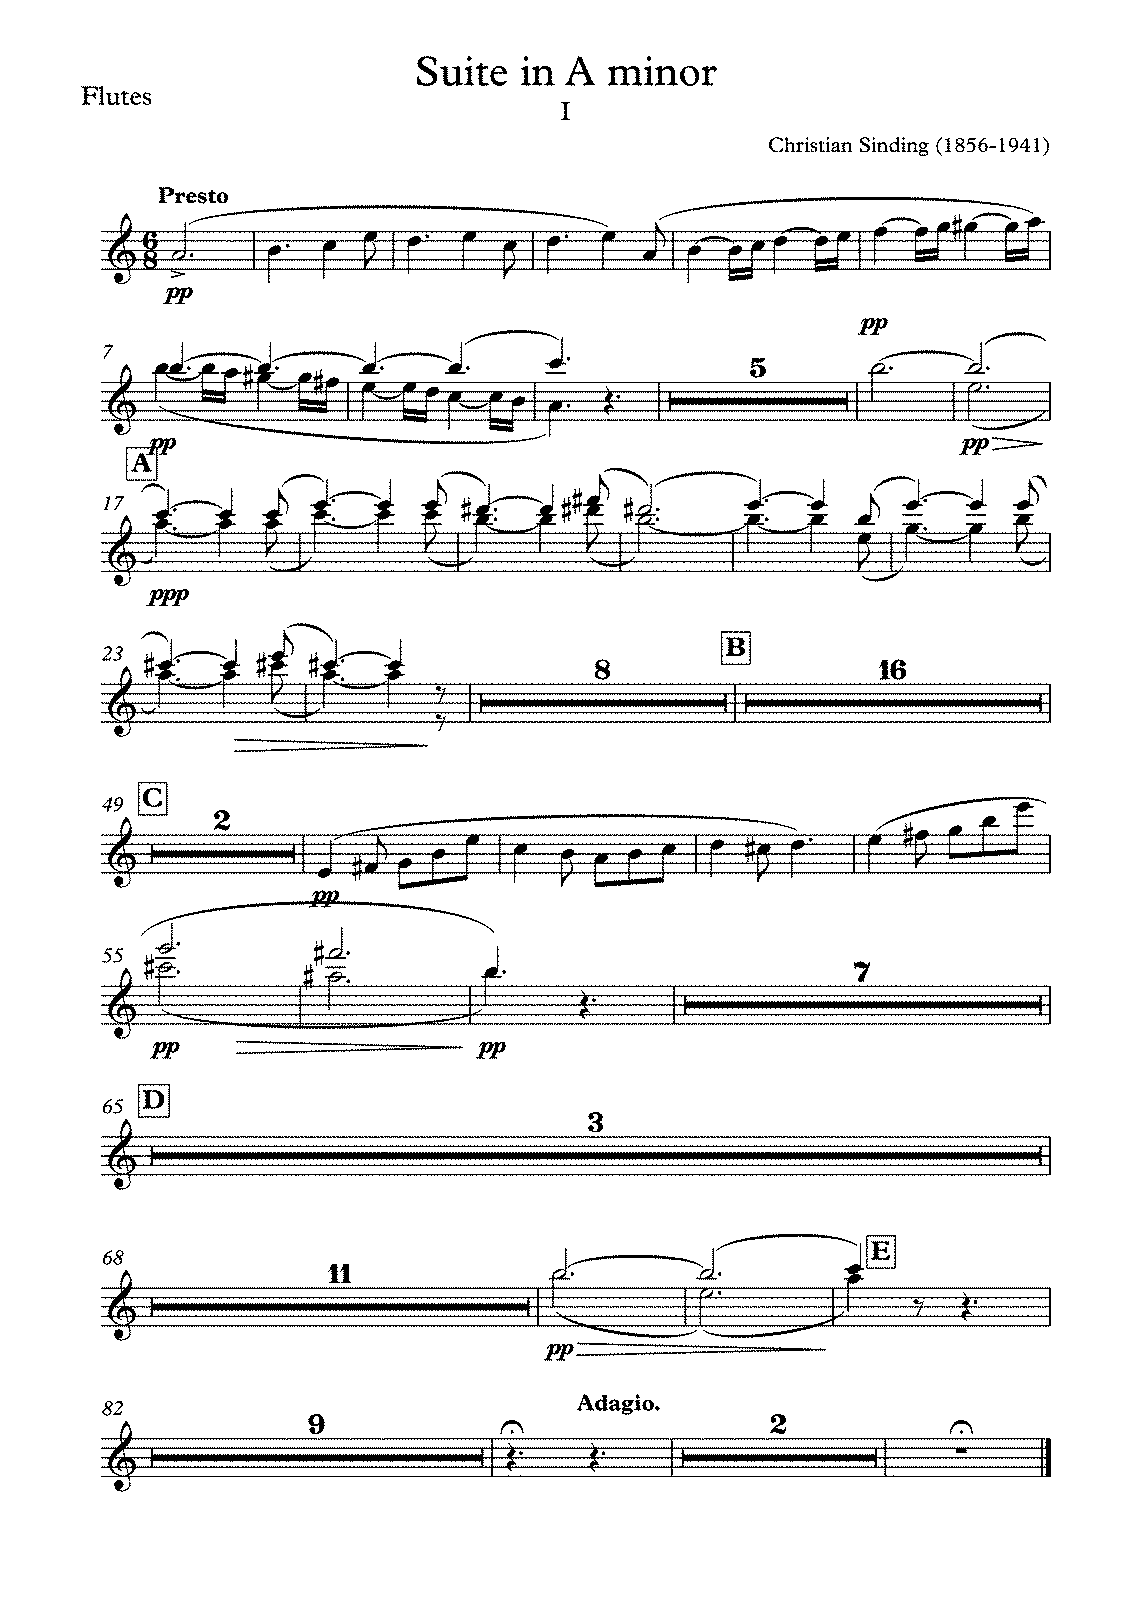 PMLP28969-Sinding - Suite in A minor - Flutes.pdf